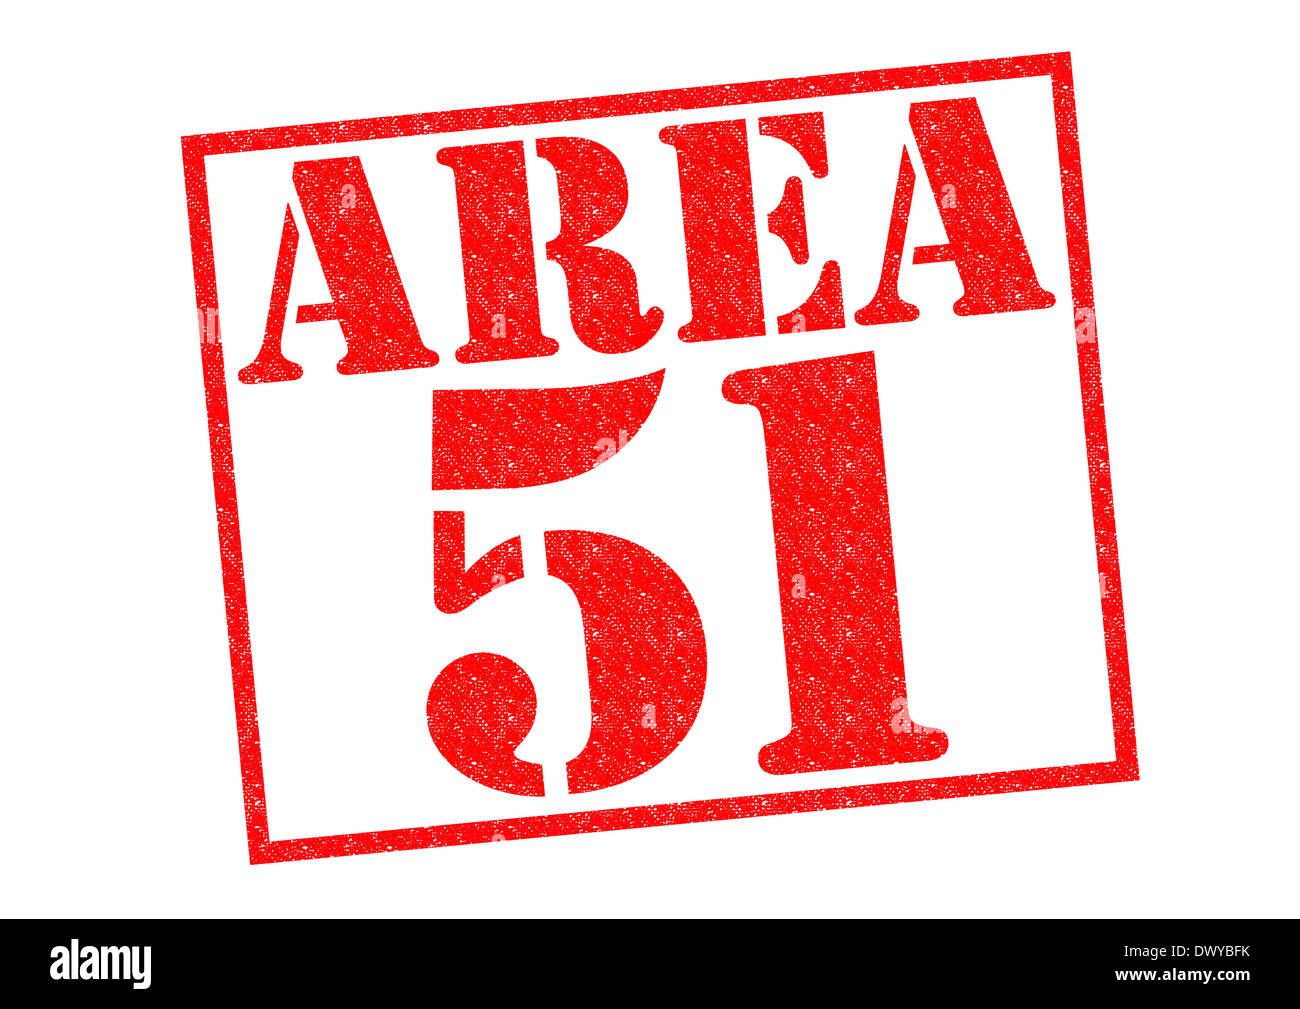 AREA 51 red Rubber Stamp over a white background. - Stock Image